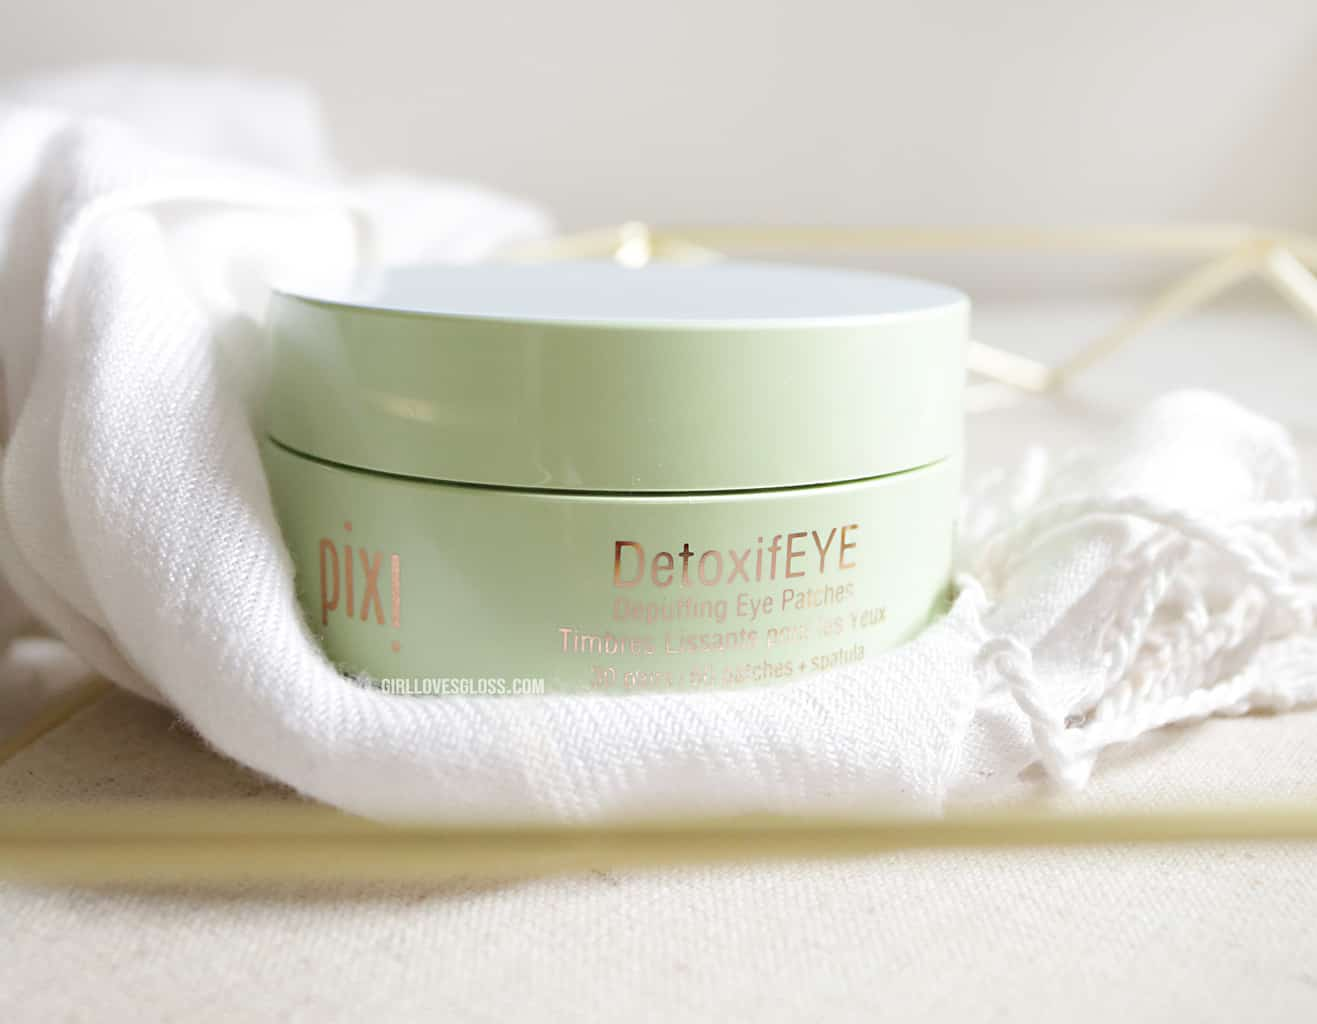 Pixi Detoxifeye Undereye Patches